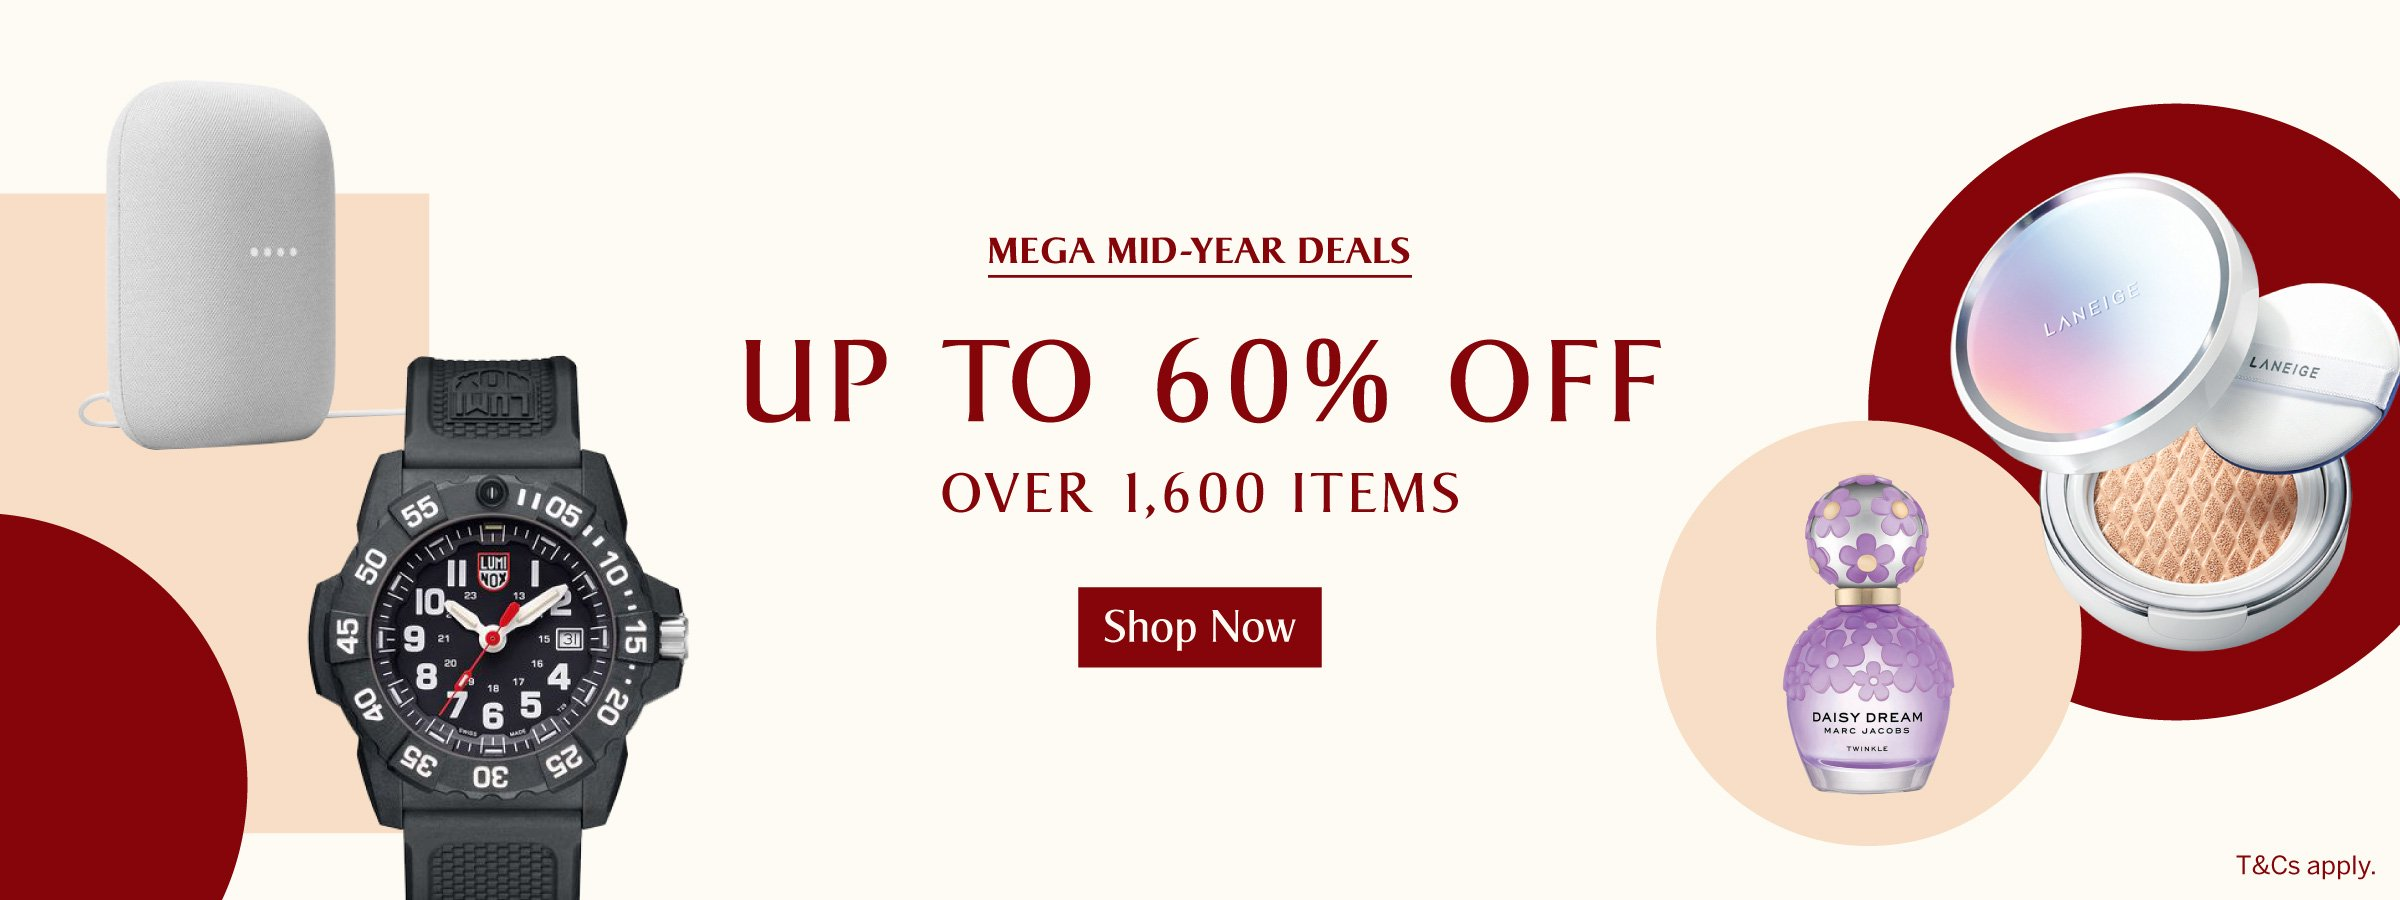 Up to 60% off over 1,600 items